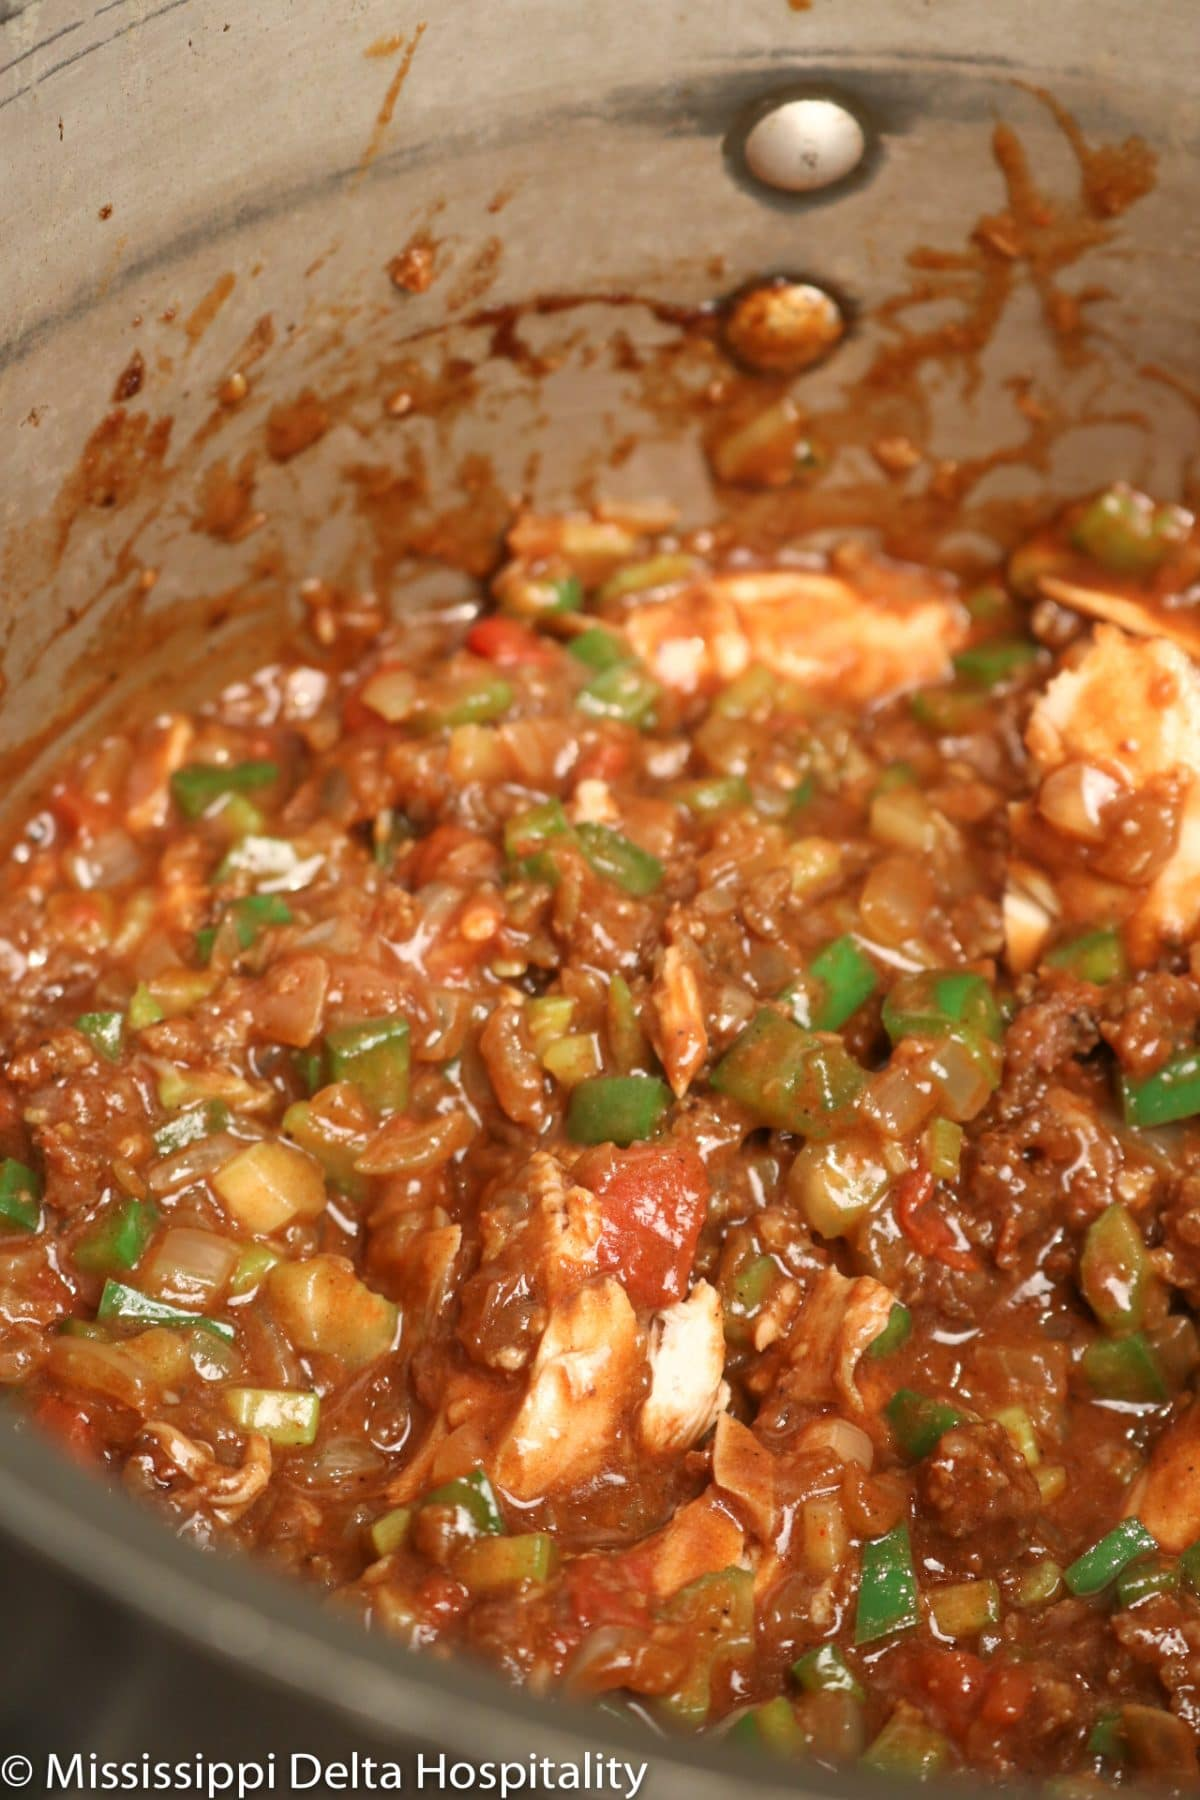 A large stock pot with gumbo.